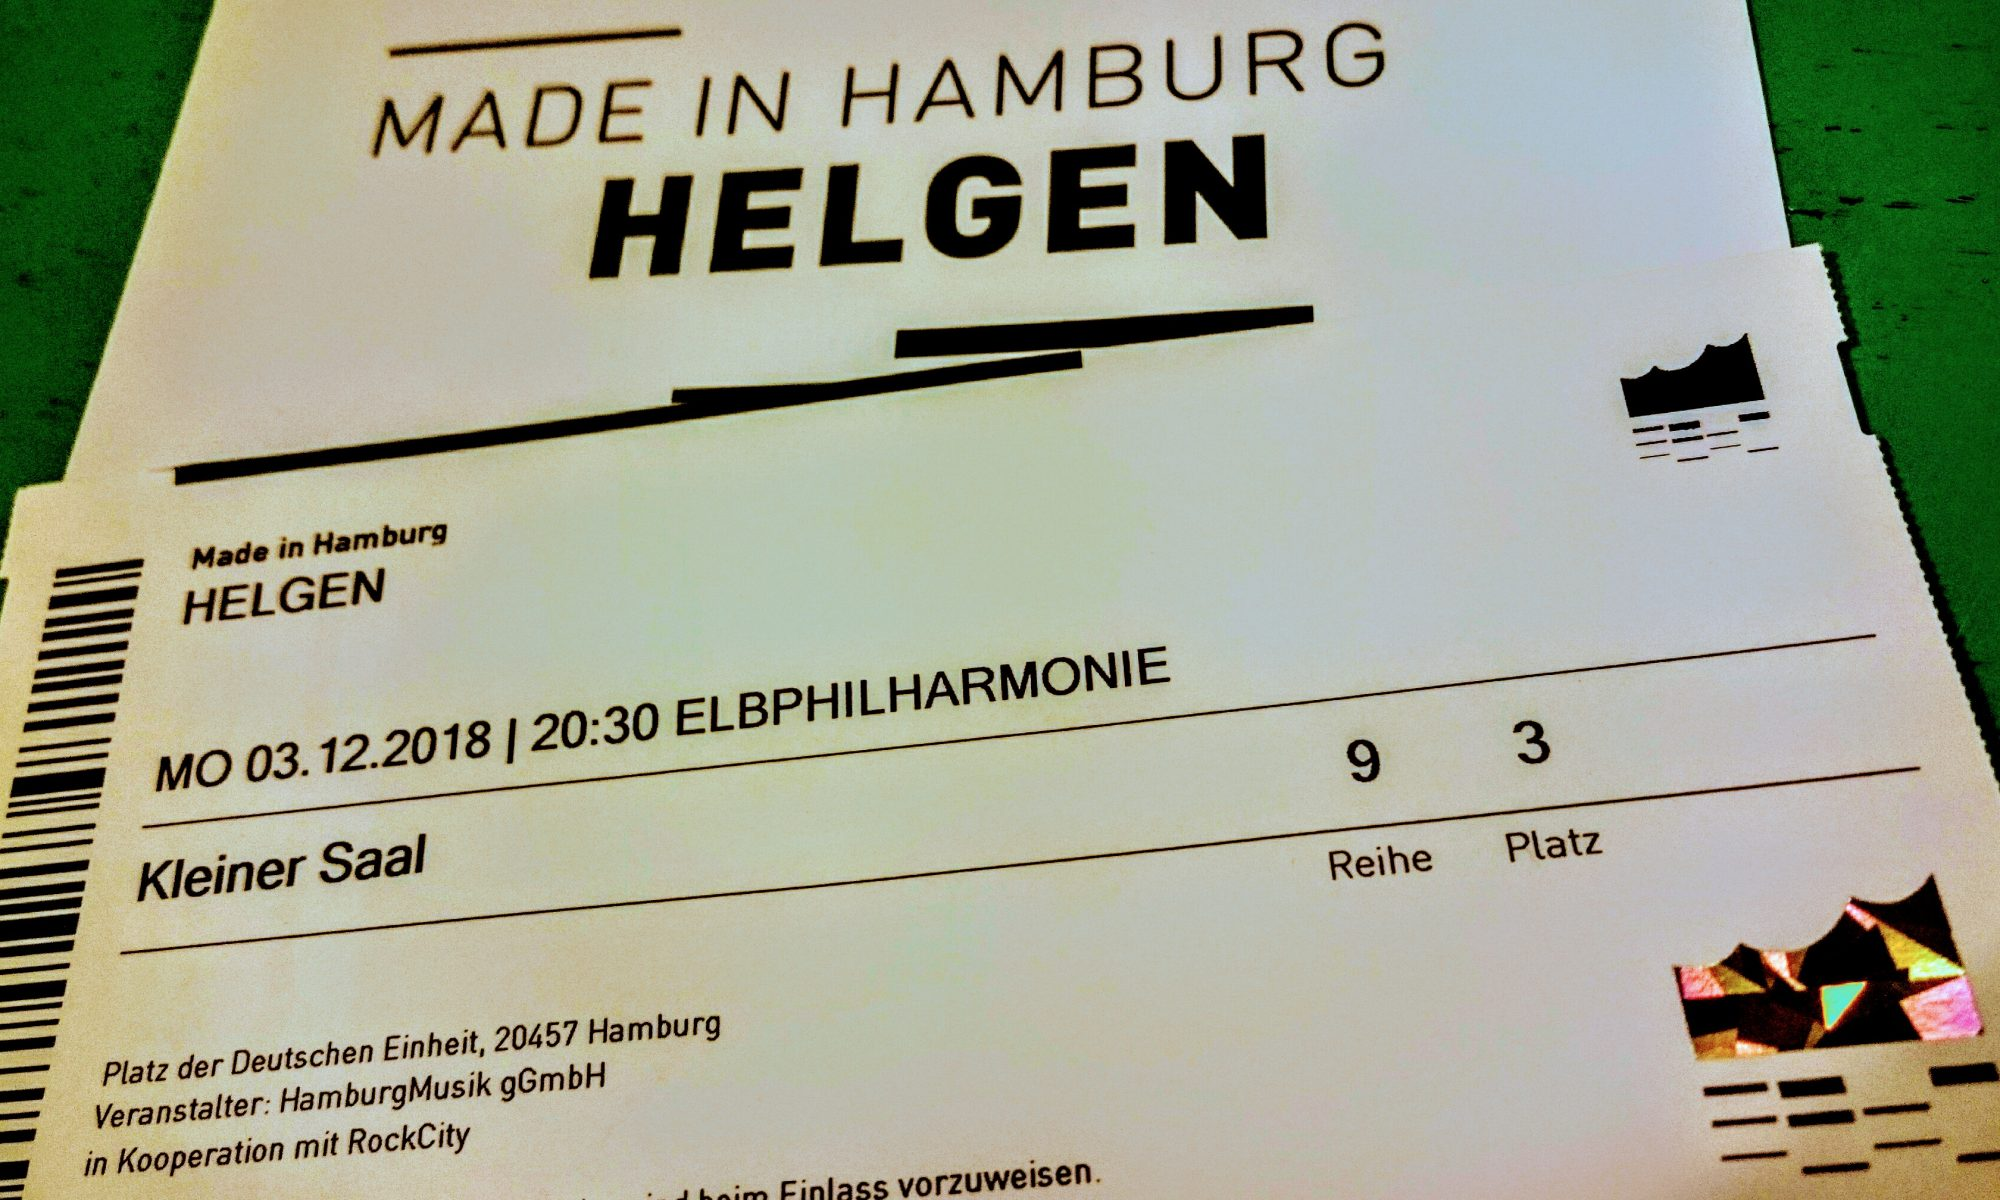 Helgen, Band, Hamburg, Made in Hamburg, Konzertreihe, Elbphilharmonie, Rockcity, Pop, Rock, Helgen Schulz, Timon Schempp, Niklas Beck, Singer, Guitar, Drums, Keyboard, Base